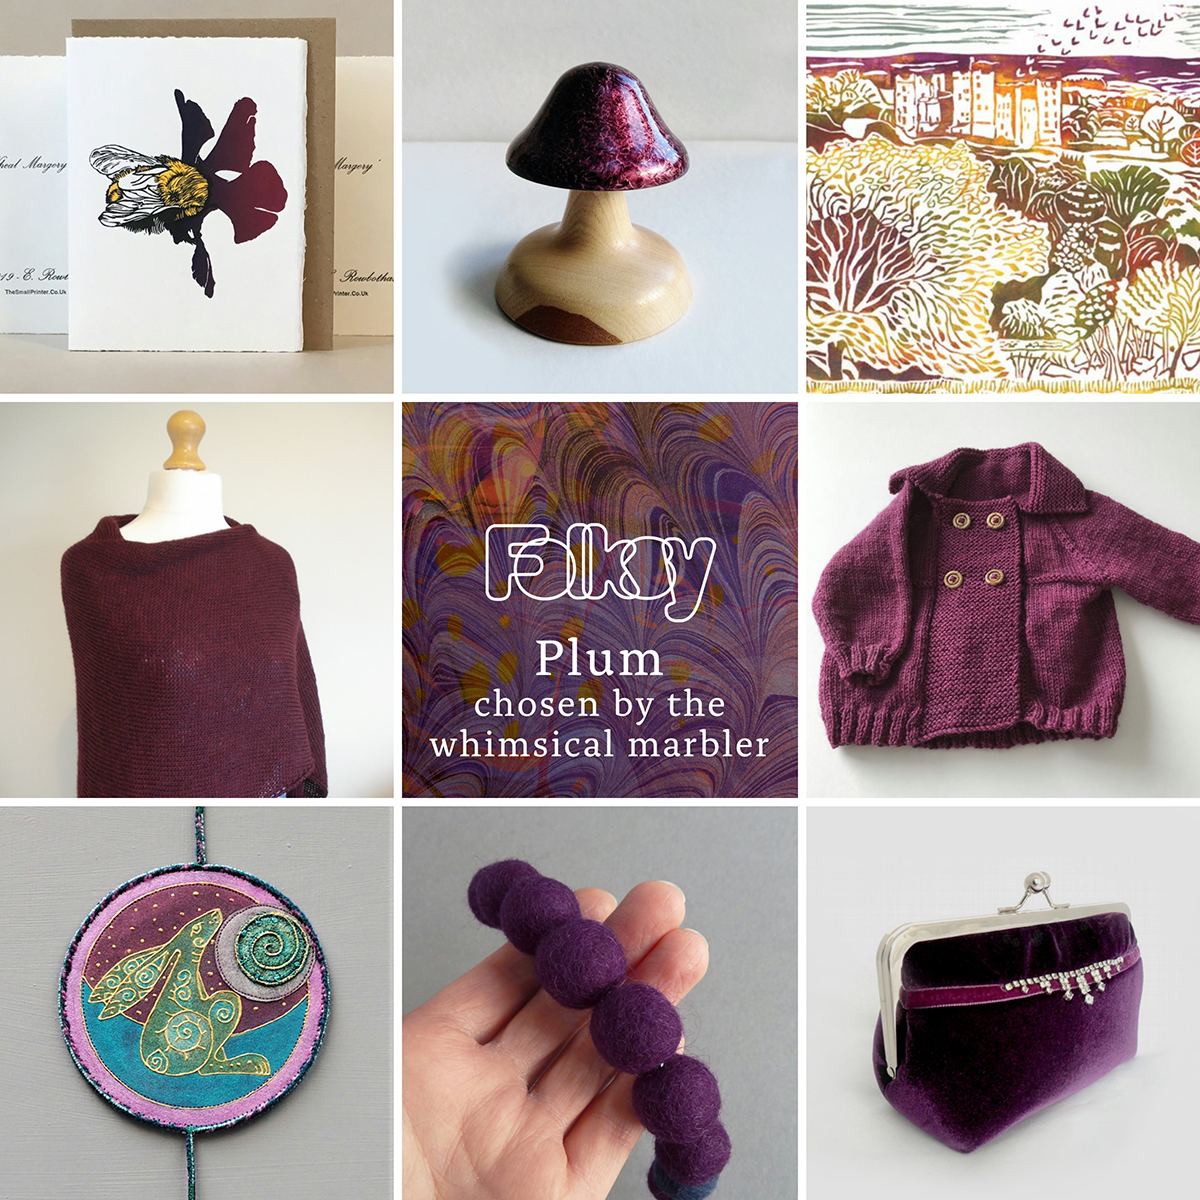 Today our #FolksyFriday has been chosen by our featured maker, Jess from The Whimsical Marbler, and its a delectable selection in shades of plum. Find them all in our favourites on Folksy - folksy.com/folksy-favouri…